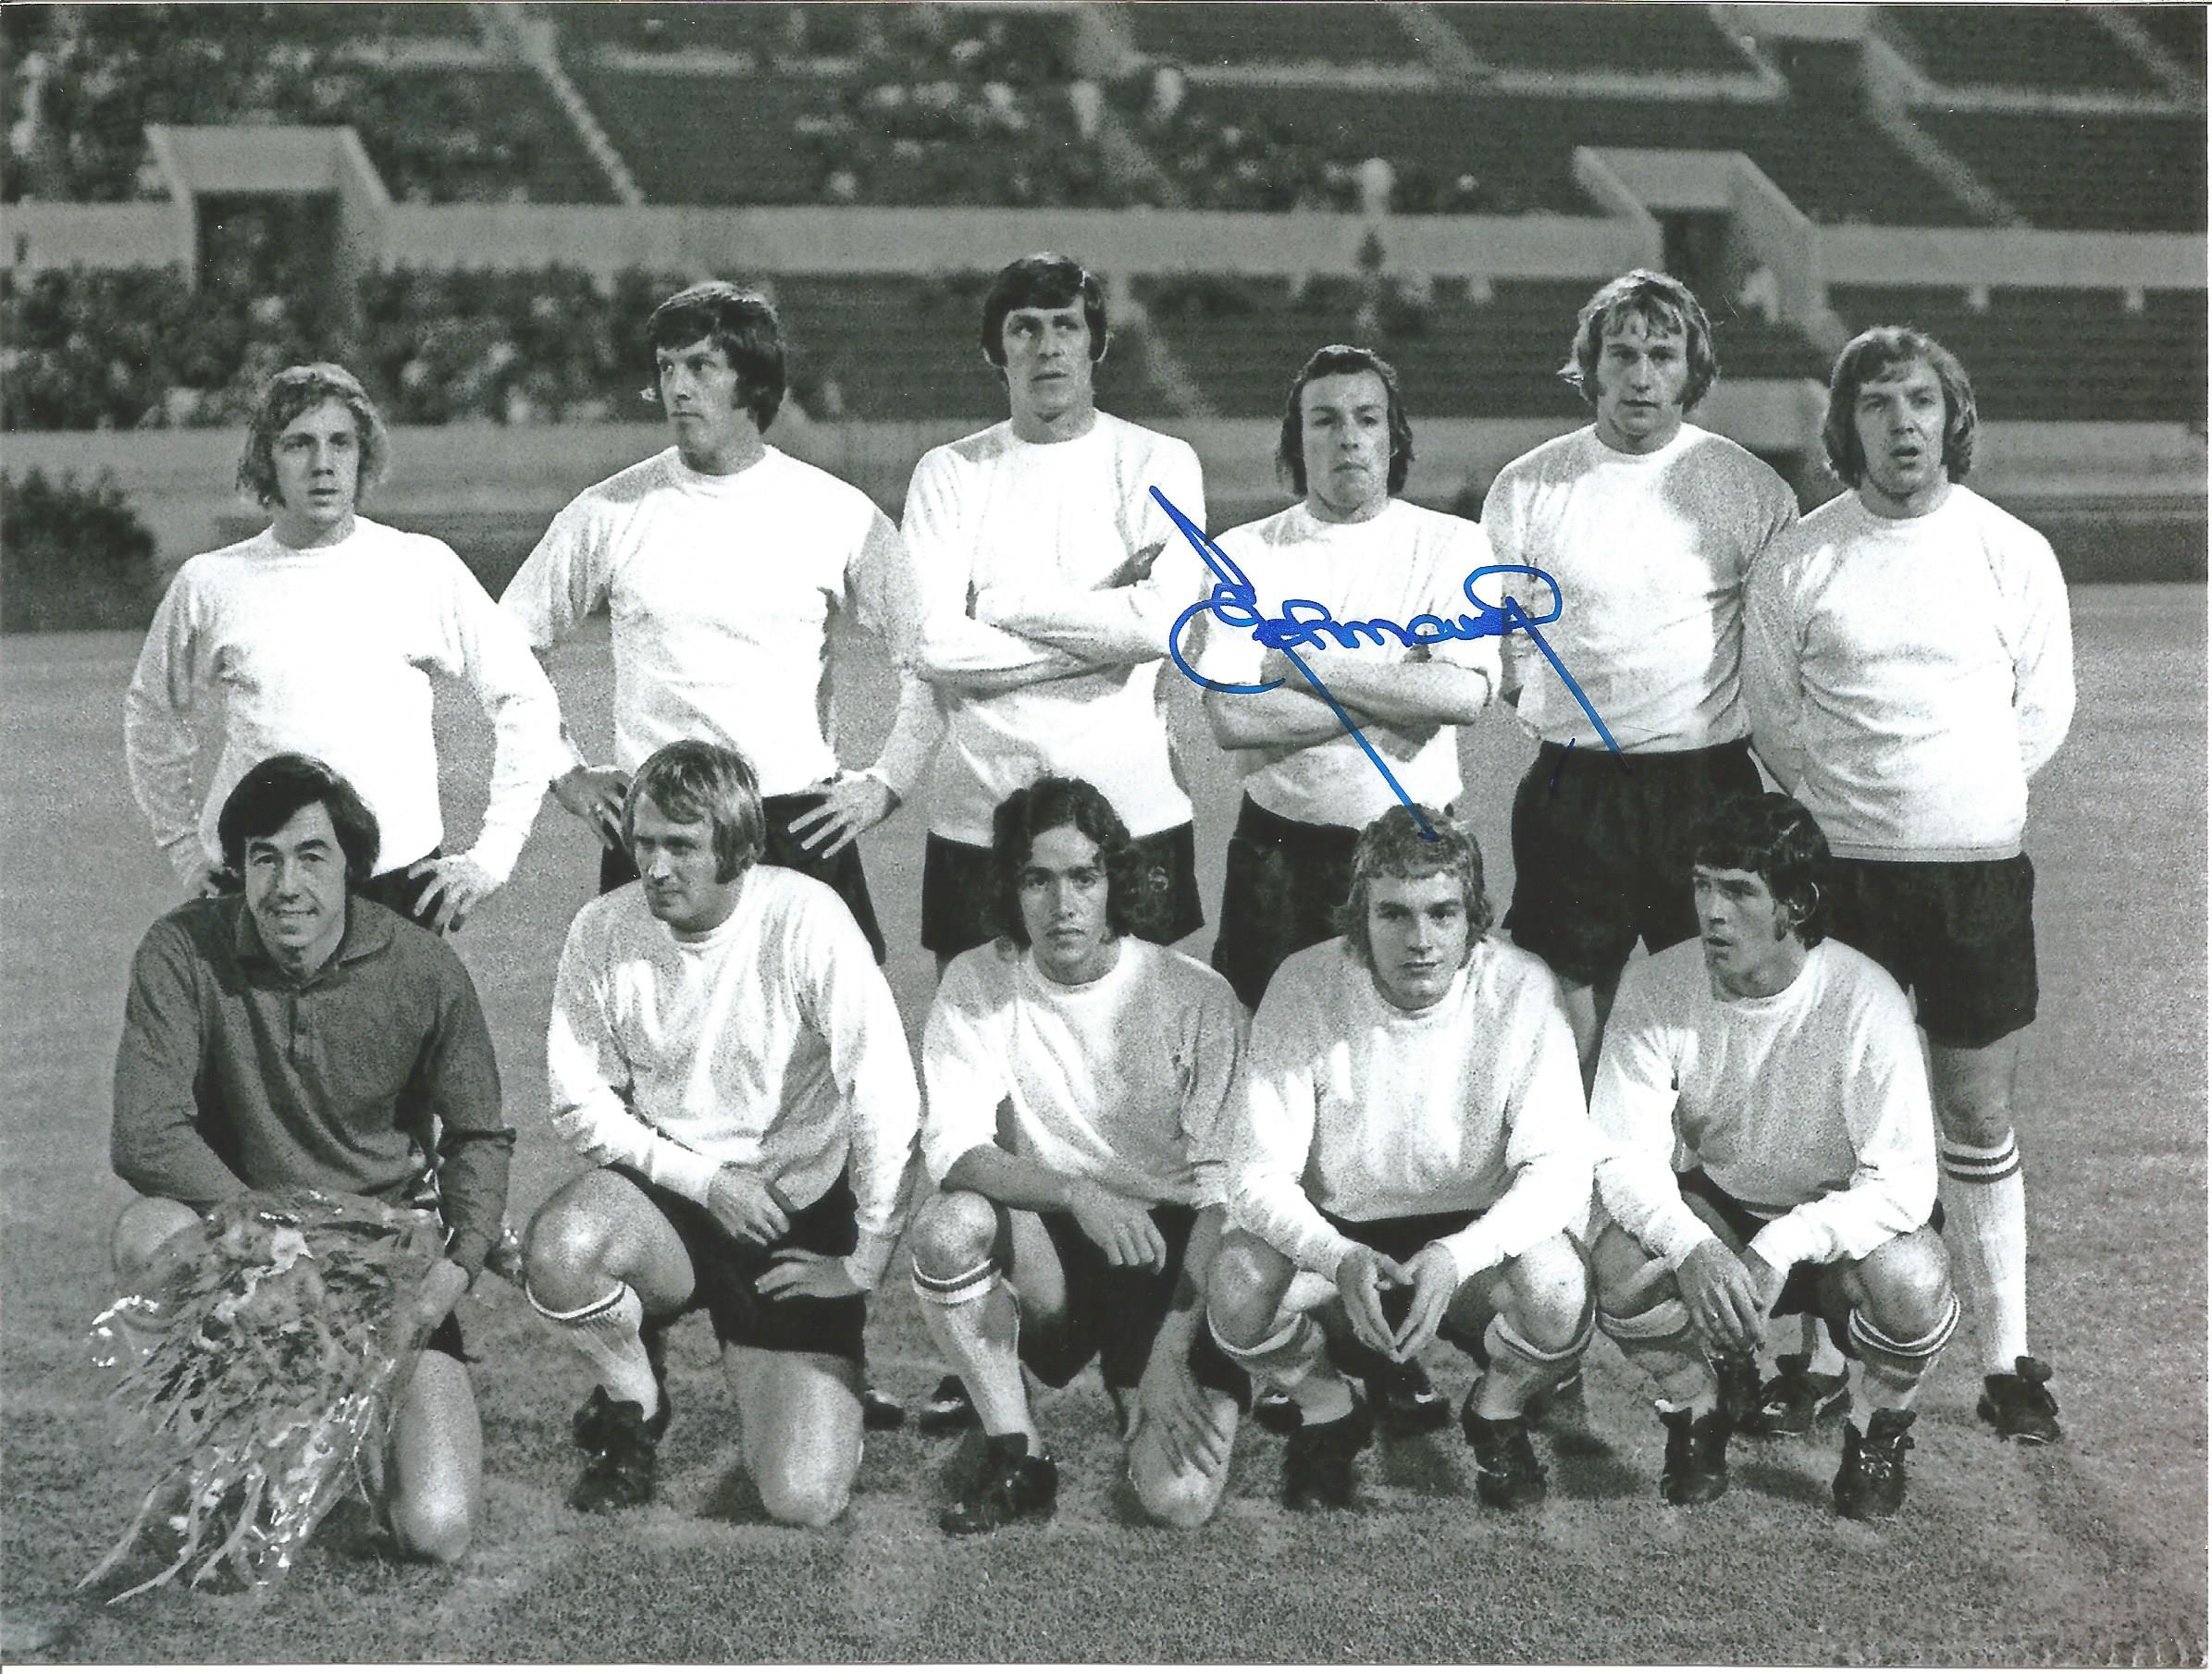 Football Autographed Stoke City 8 X 6 Photos Col & B/W, Depicting Former Player John Marsh In 3